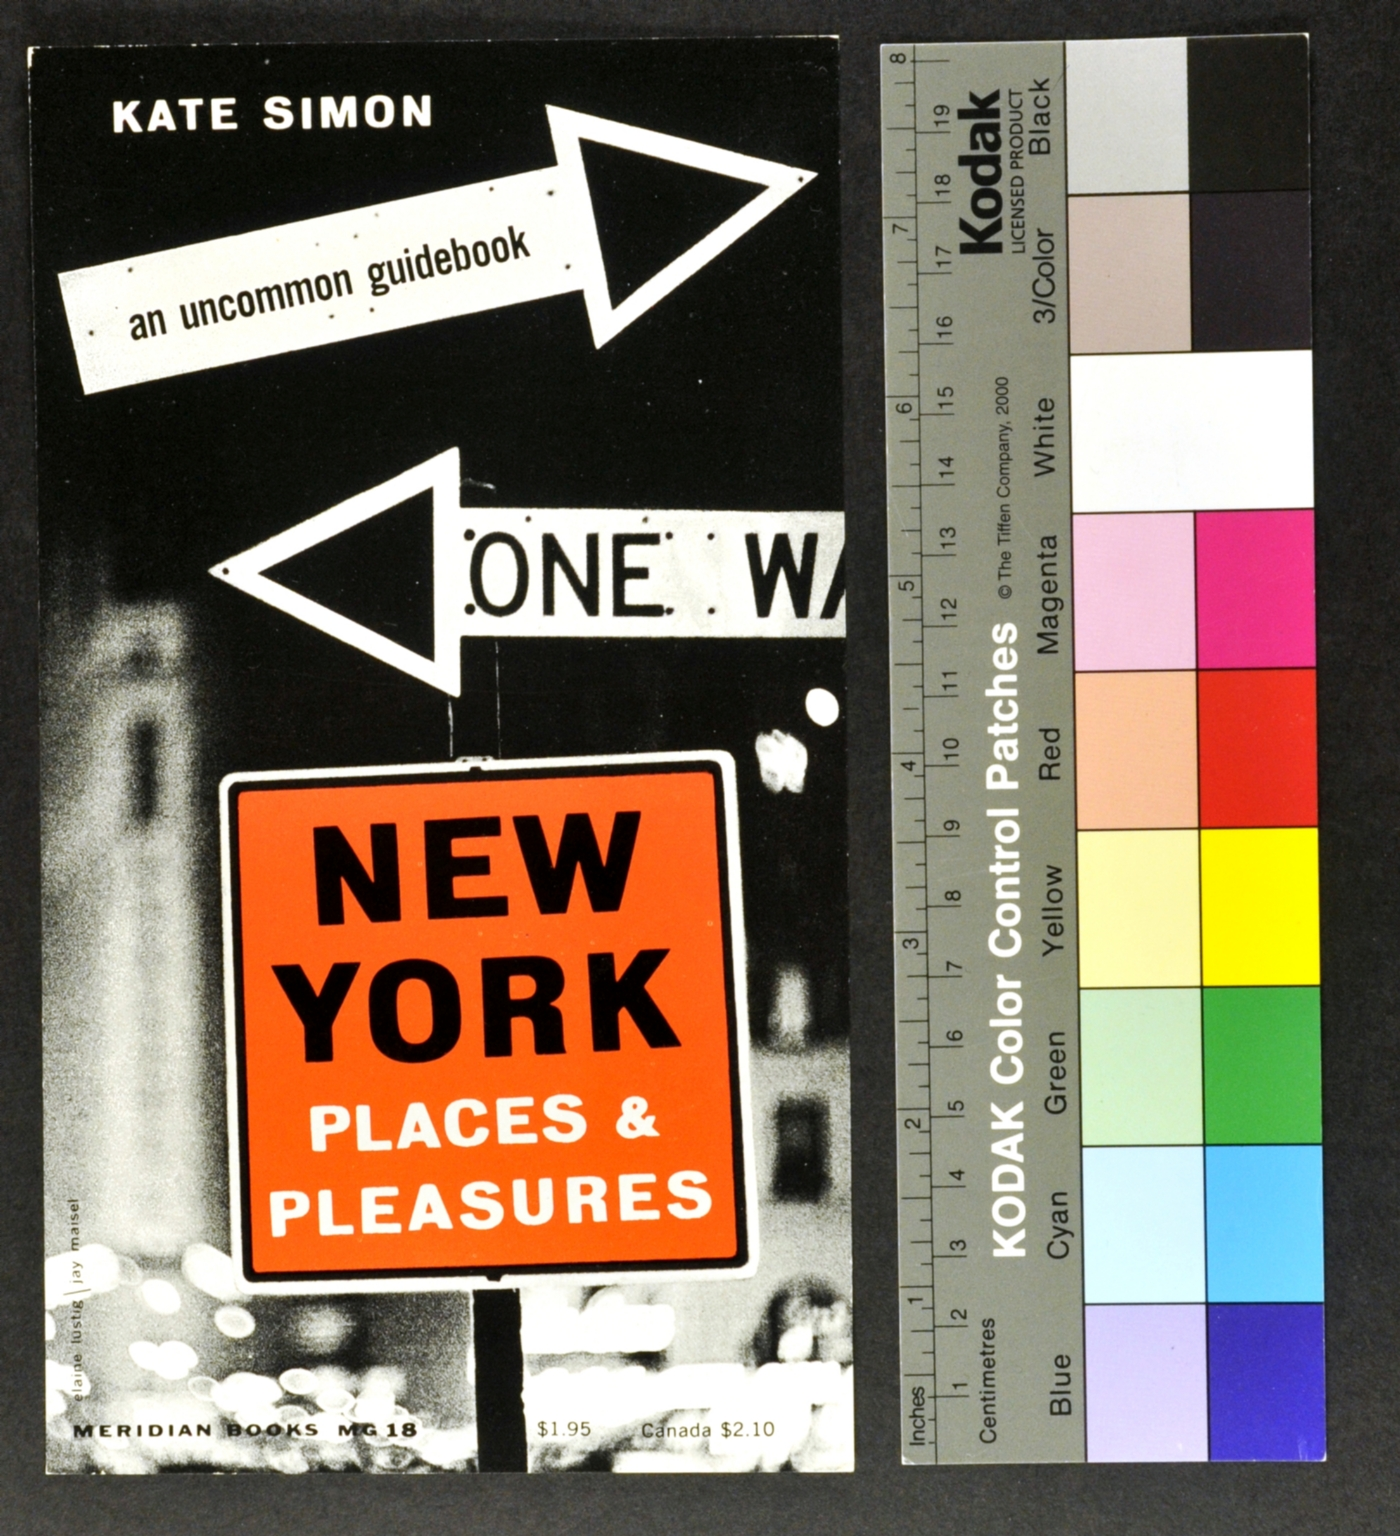 New York Places & Pleasures: An Uncommon Guidebook